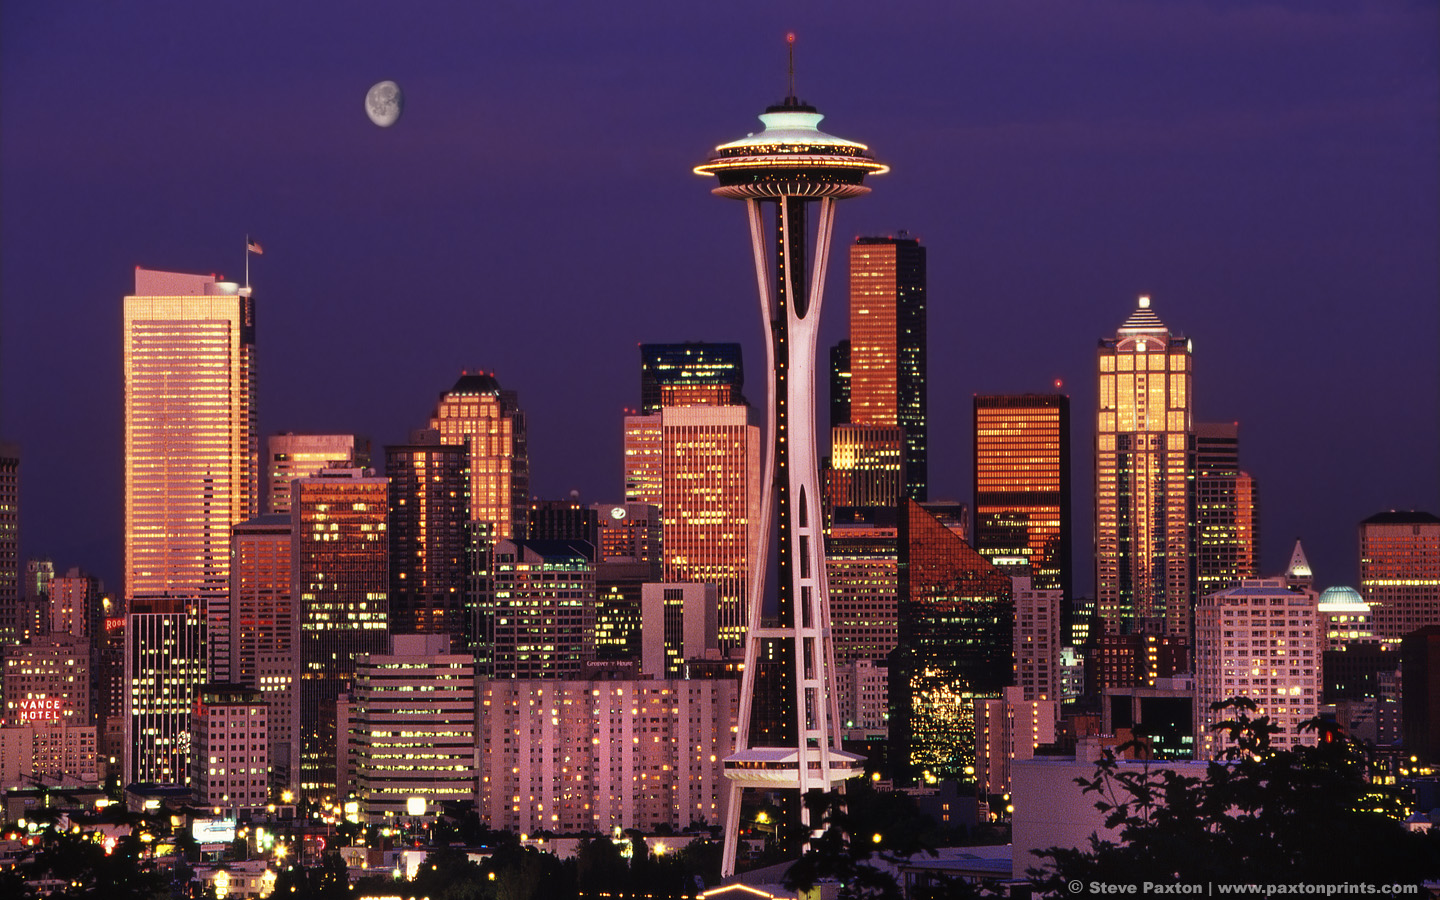 https://i1.wp.com/www.city-data.com/forum/attachments/city-vs-city/46496d1249442398-skyline-competition-san-francisco-vs-seattle-moon_over_seattle_1440x900.jpg